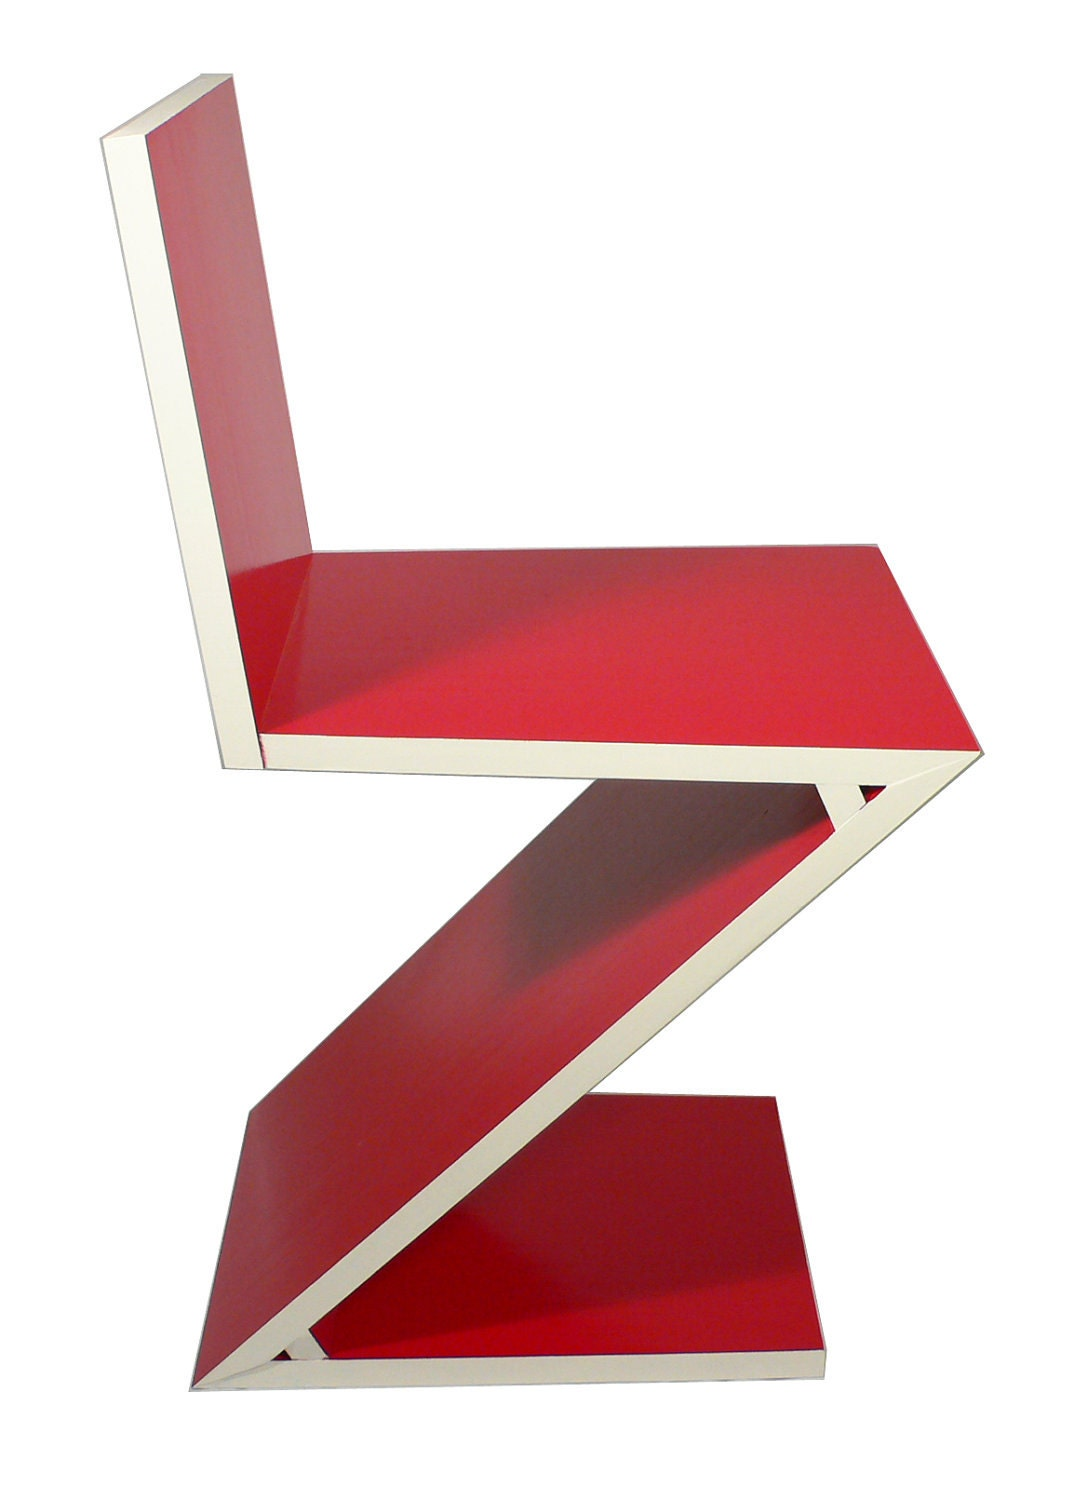 Gerrit rietveld chair for sale -  Zoom